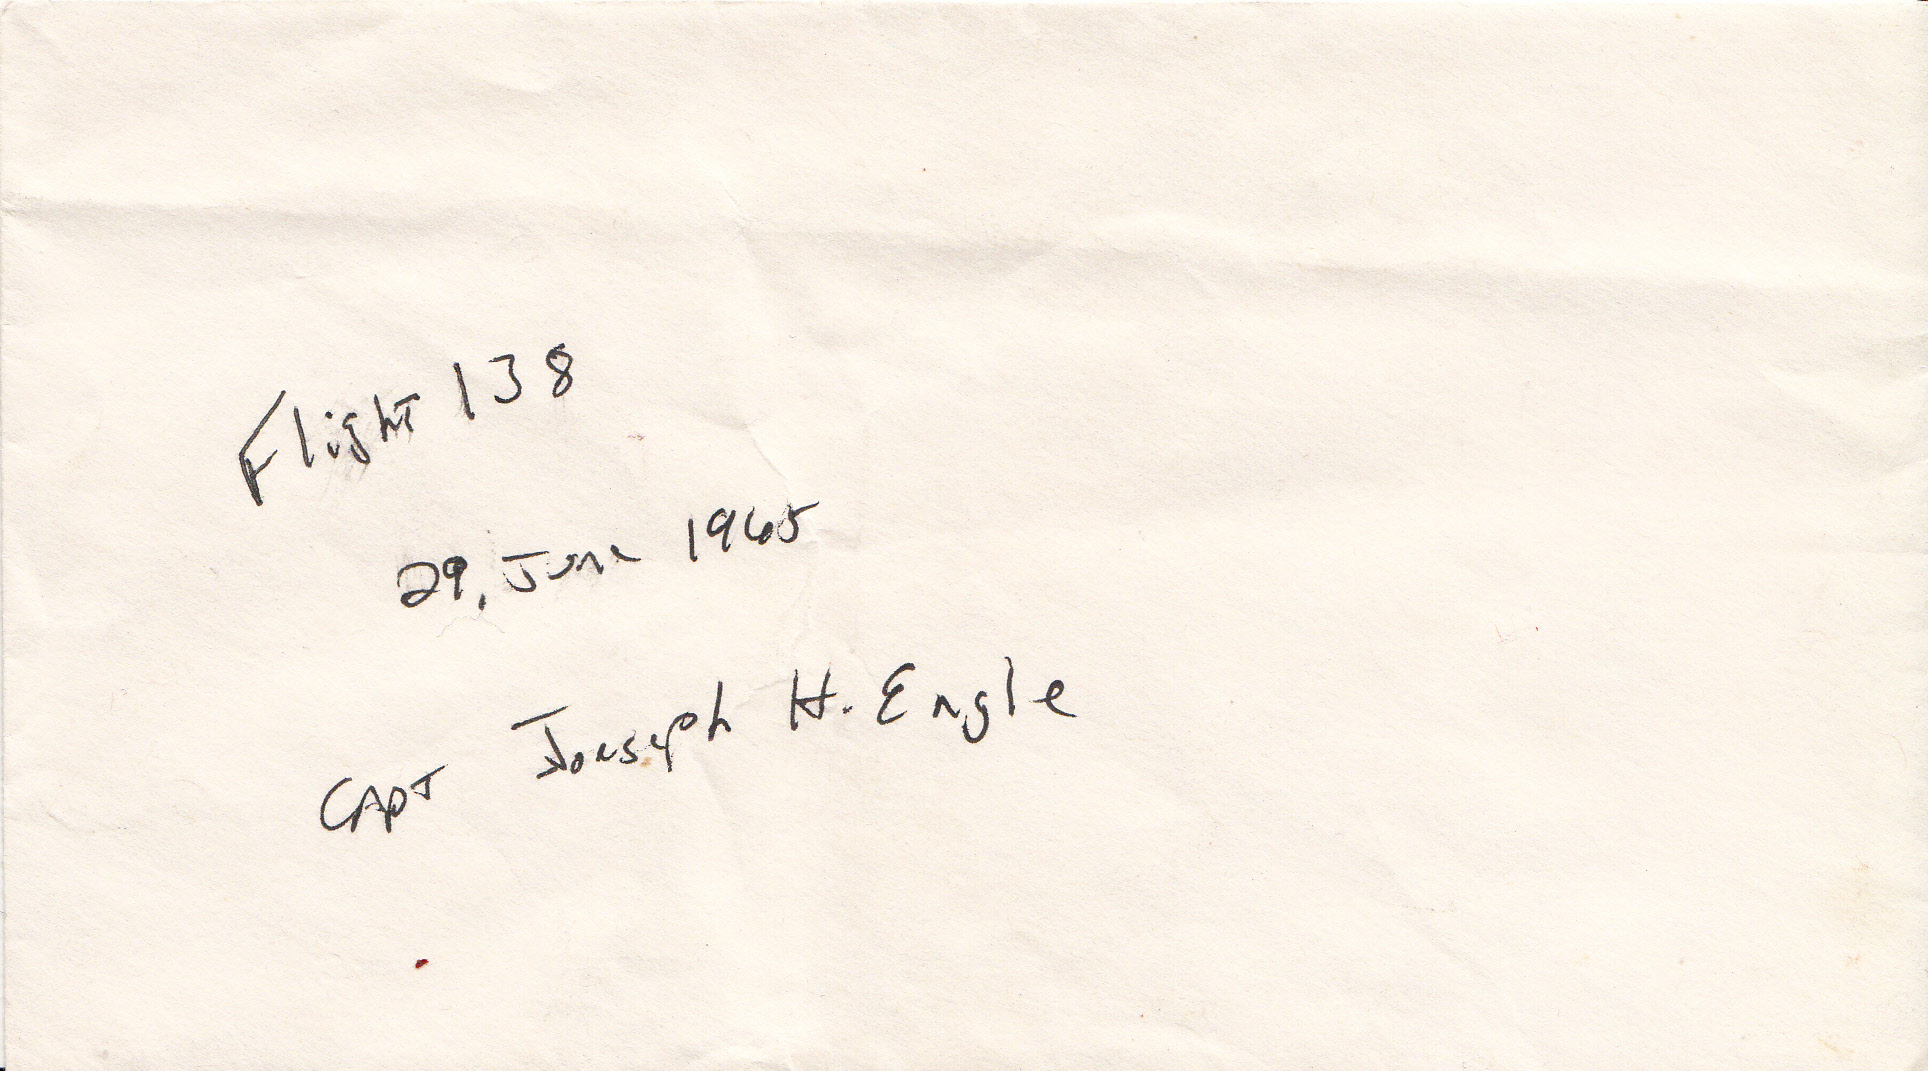 The original envelope this bill was stored in for decades.